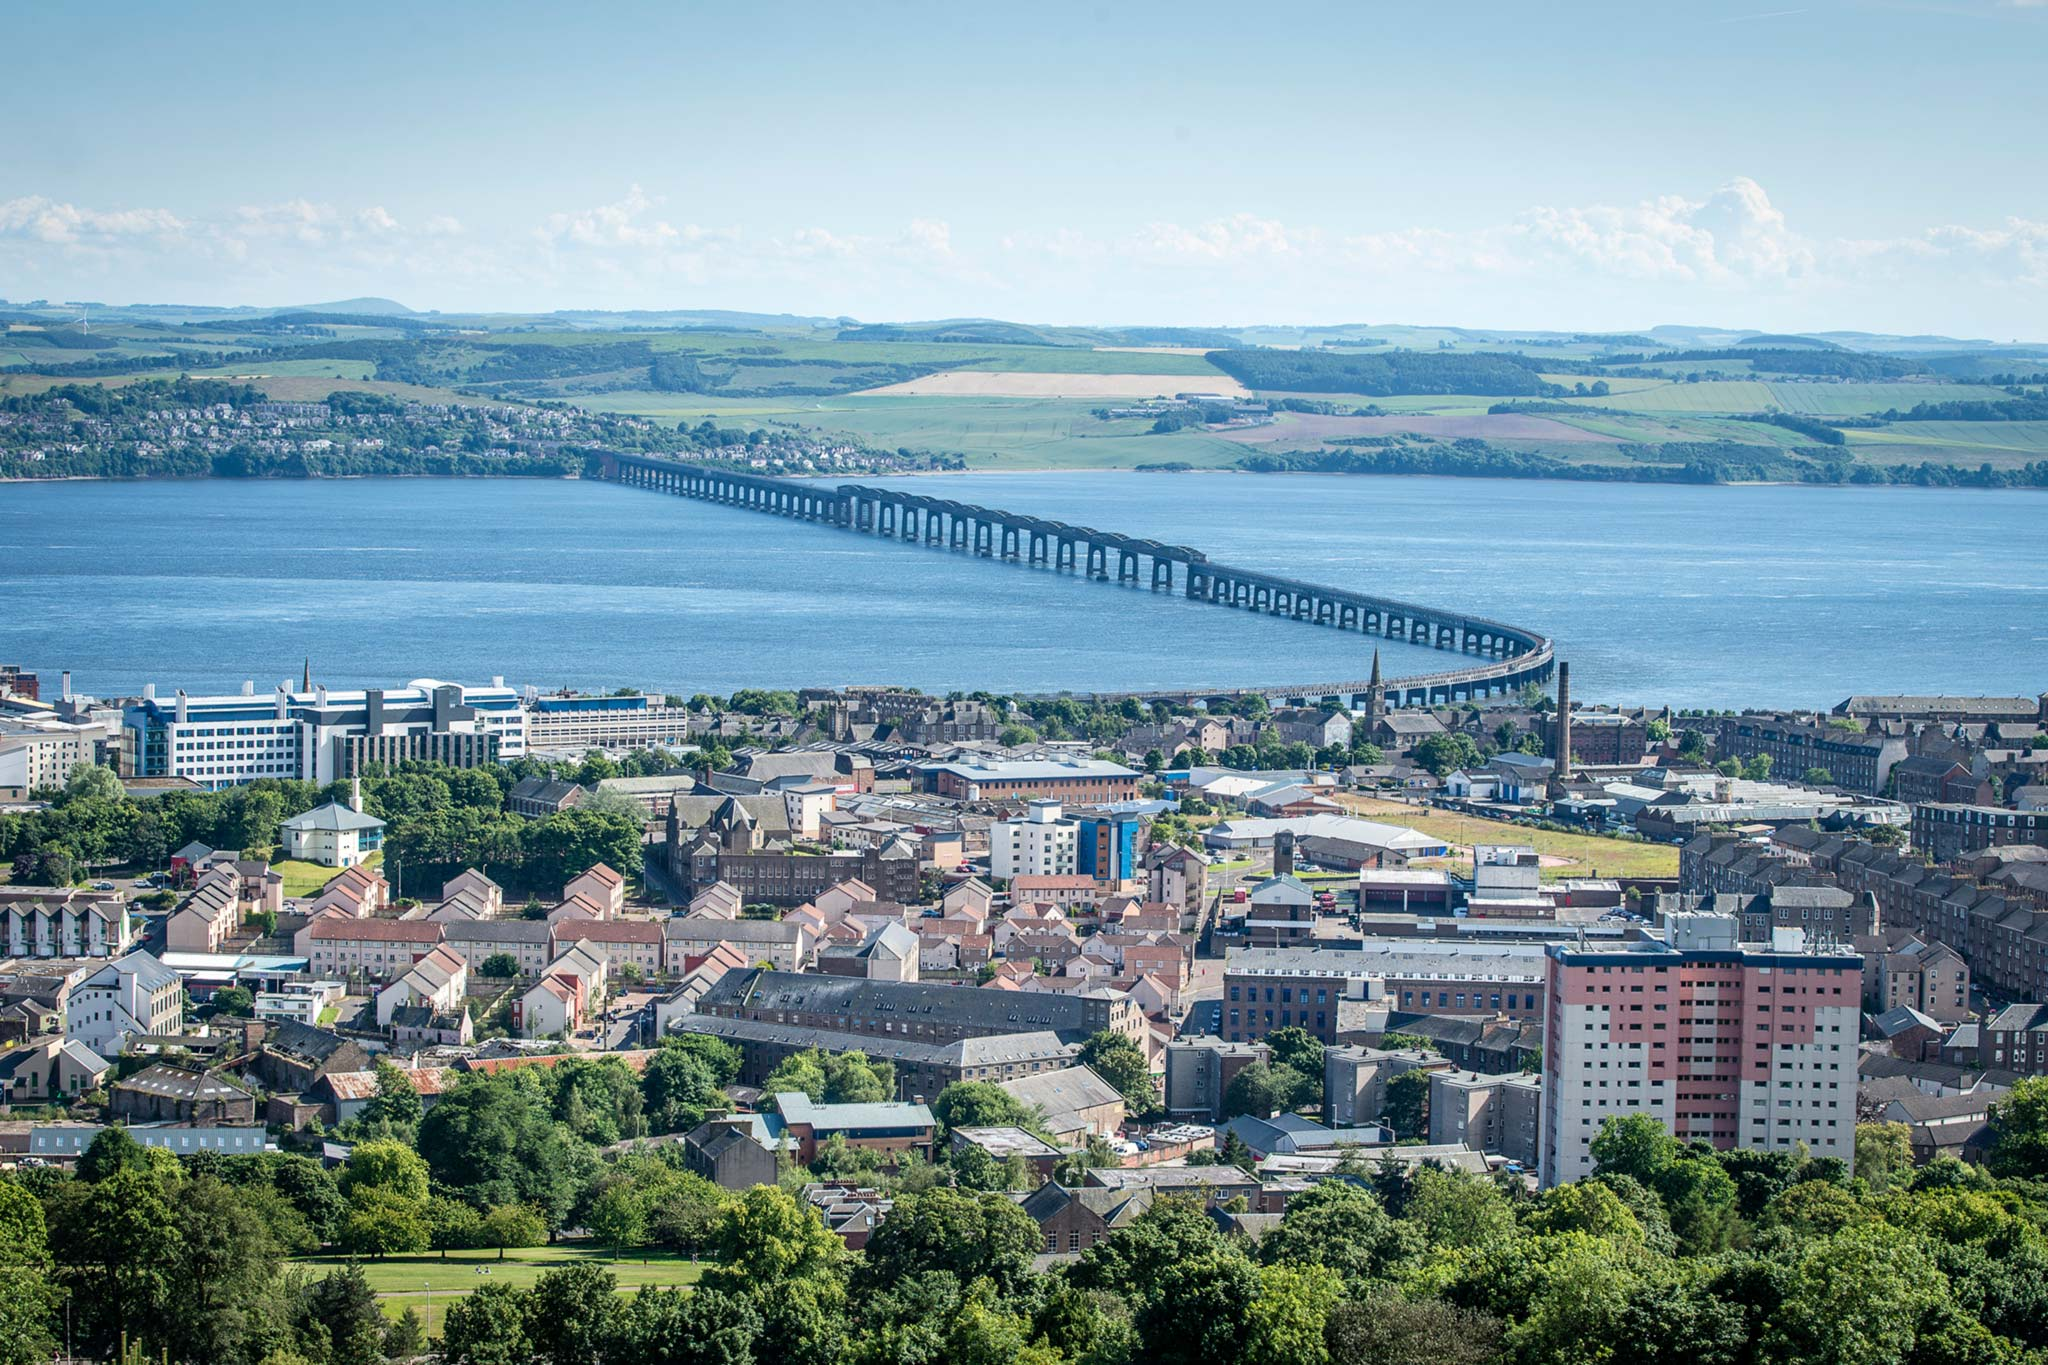 The Tay Rail Bridge as seen from Dundee Law